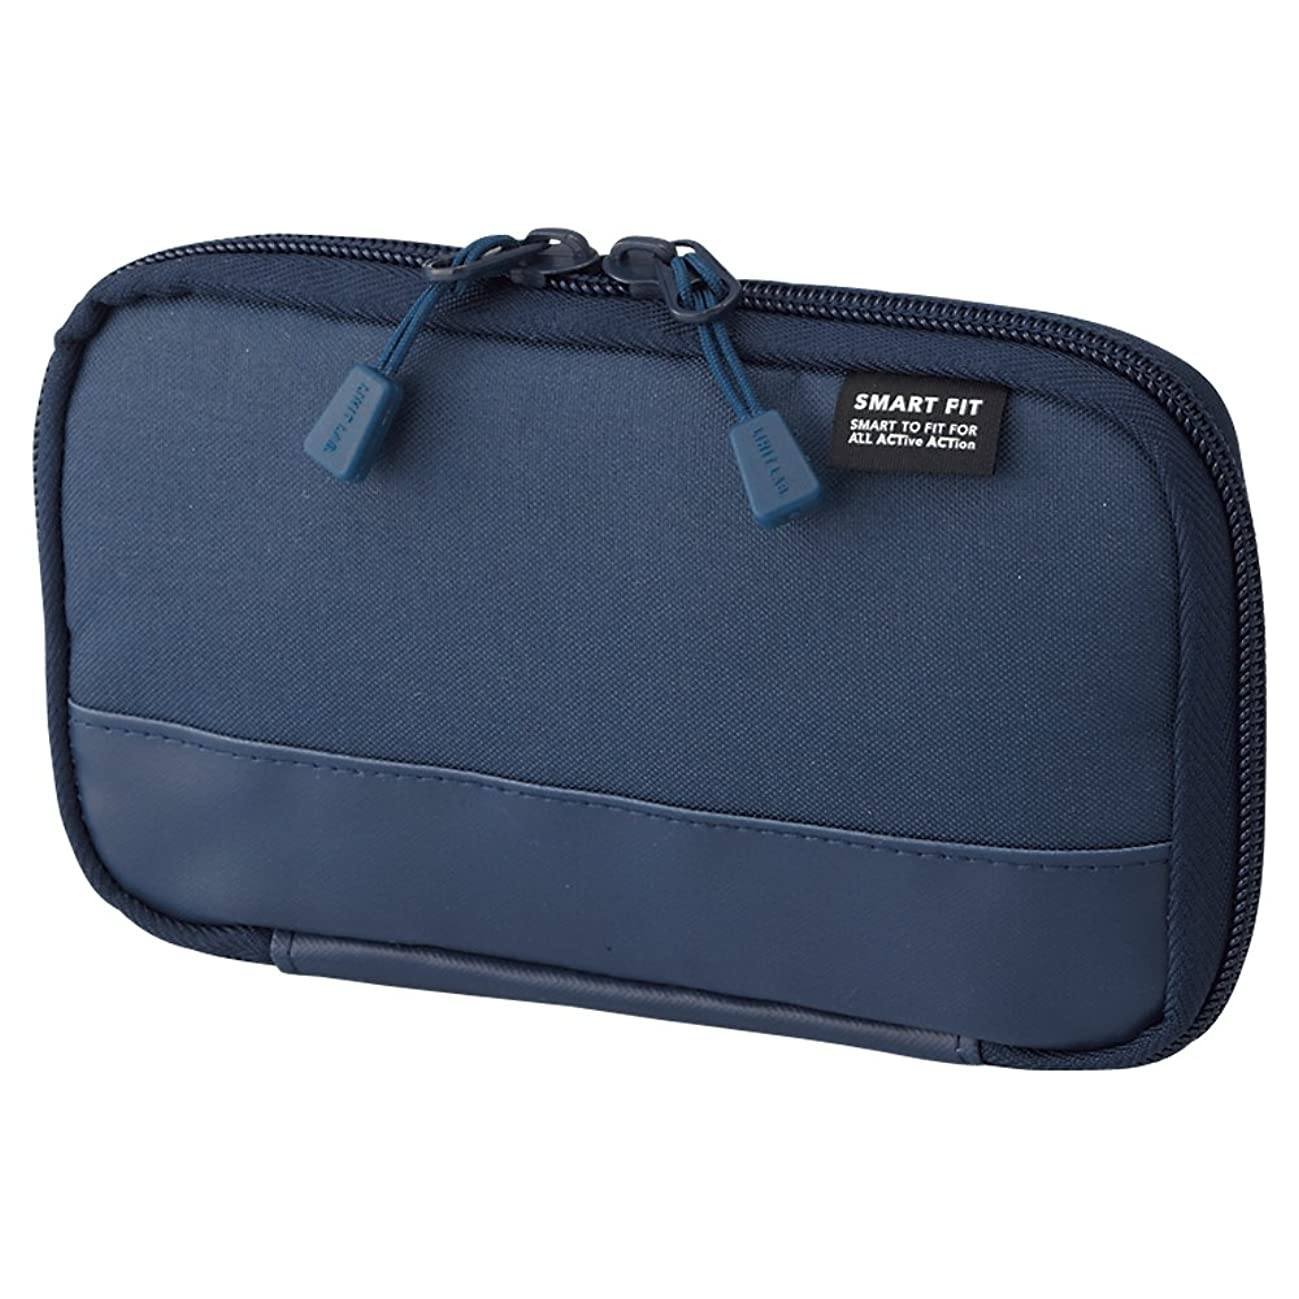 LIHIT LAB. Compact Pen Case (Pencil Case), Water & Stain Repellent, Navy, 3.5